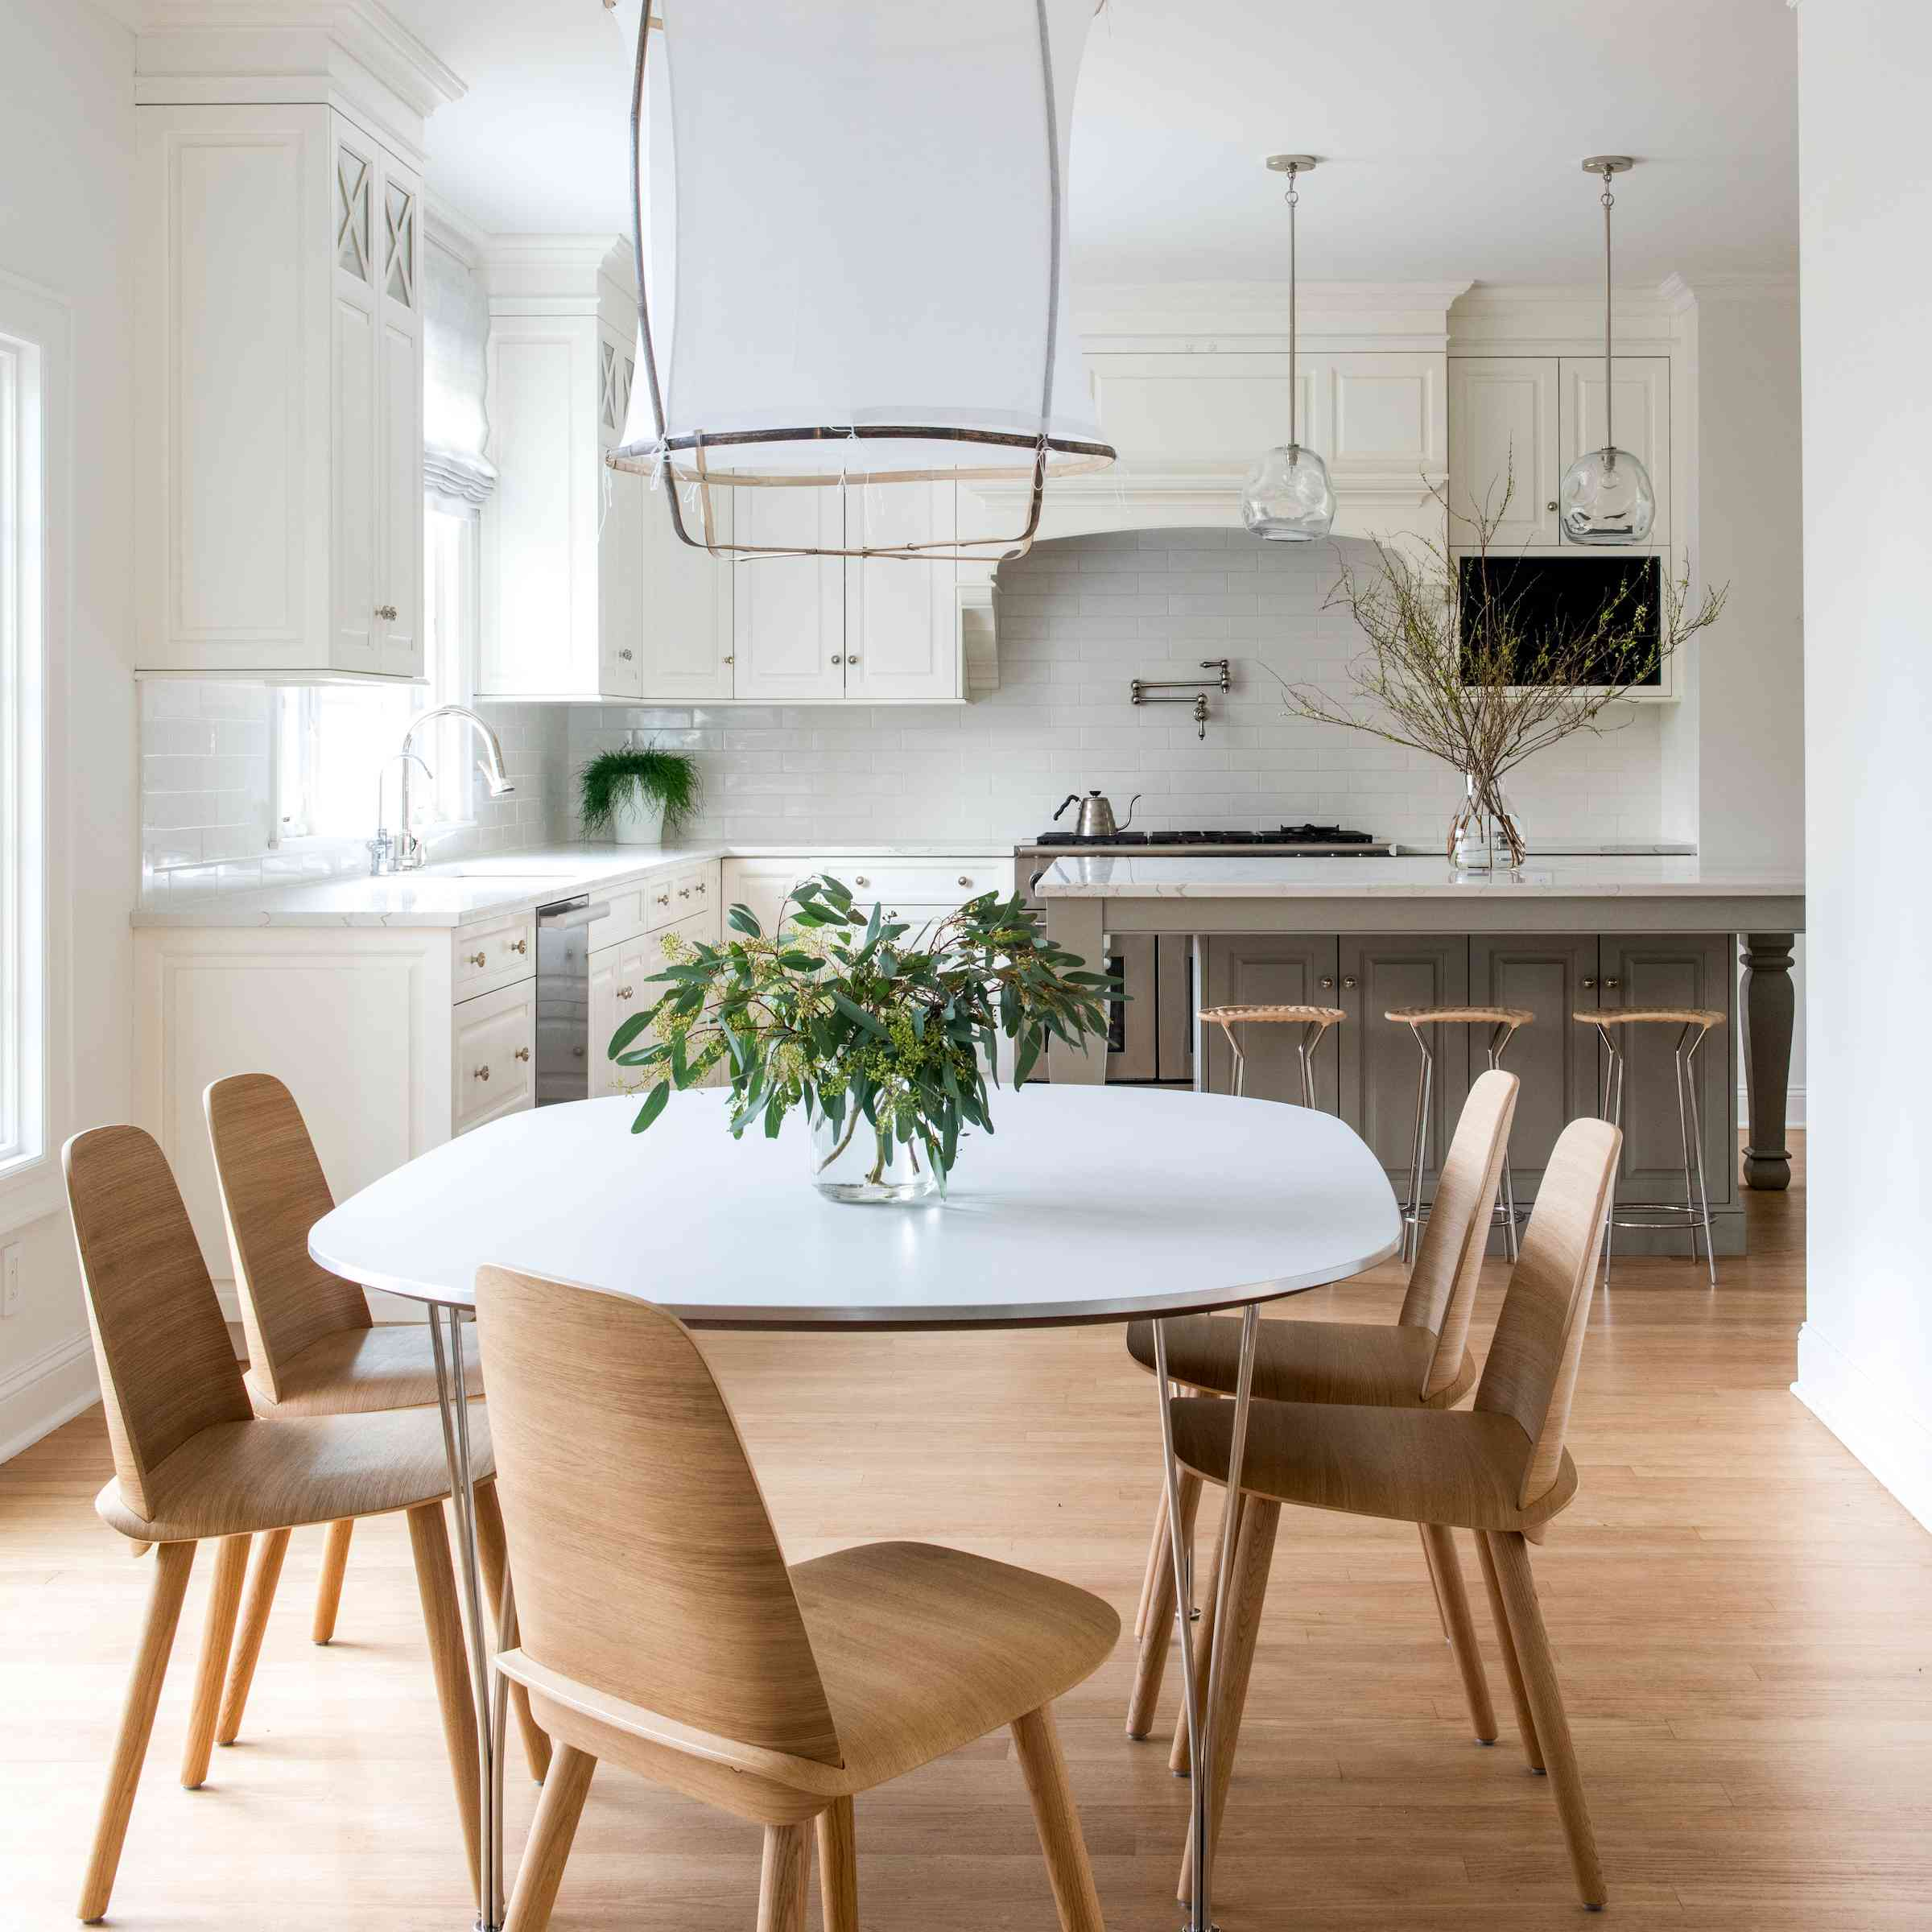 Simple kitchen dining set with large chandelier above.